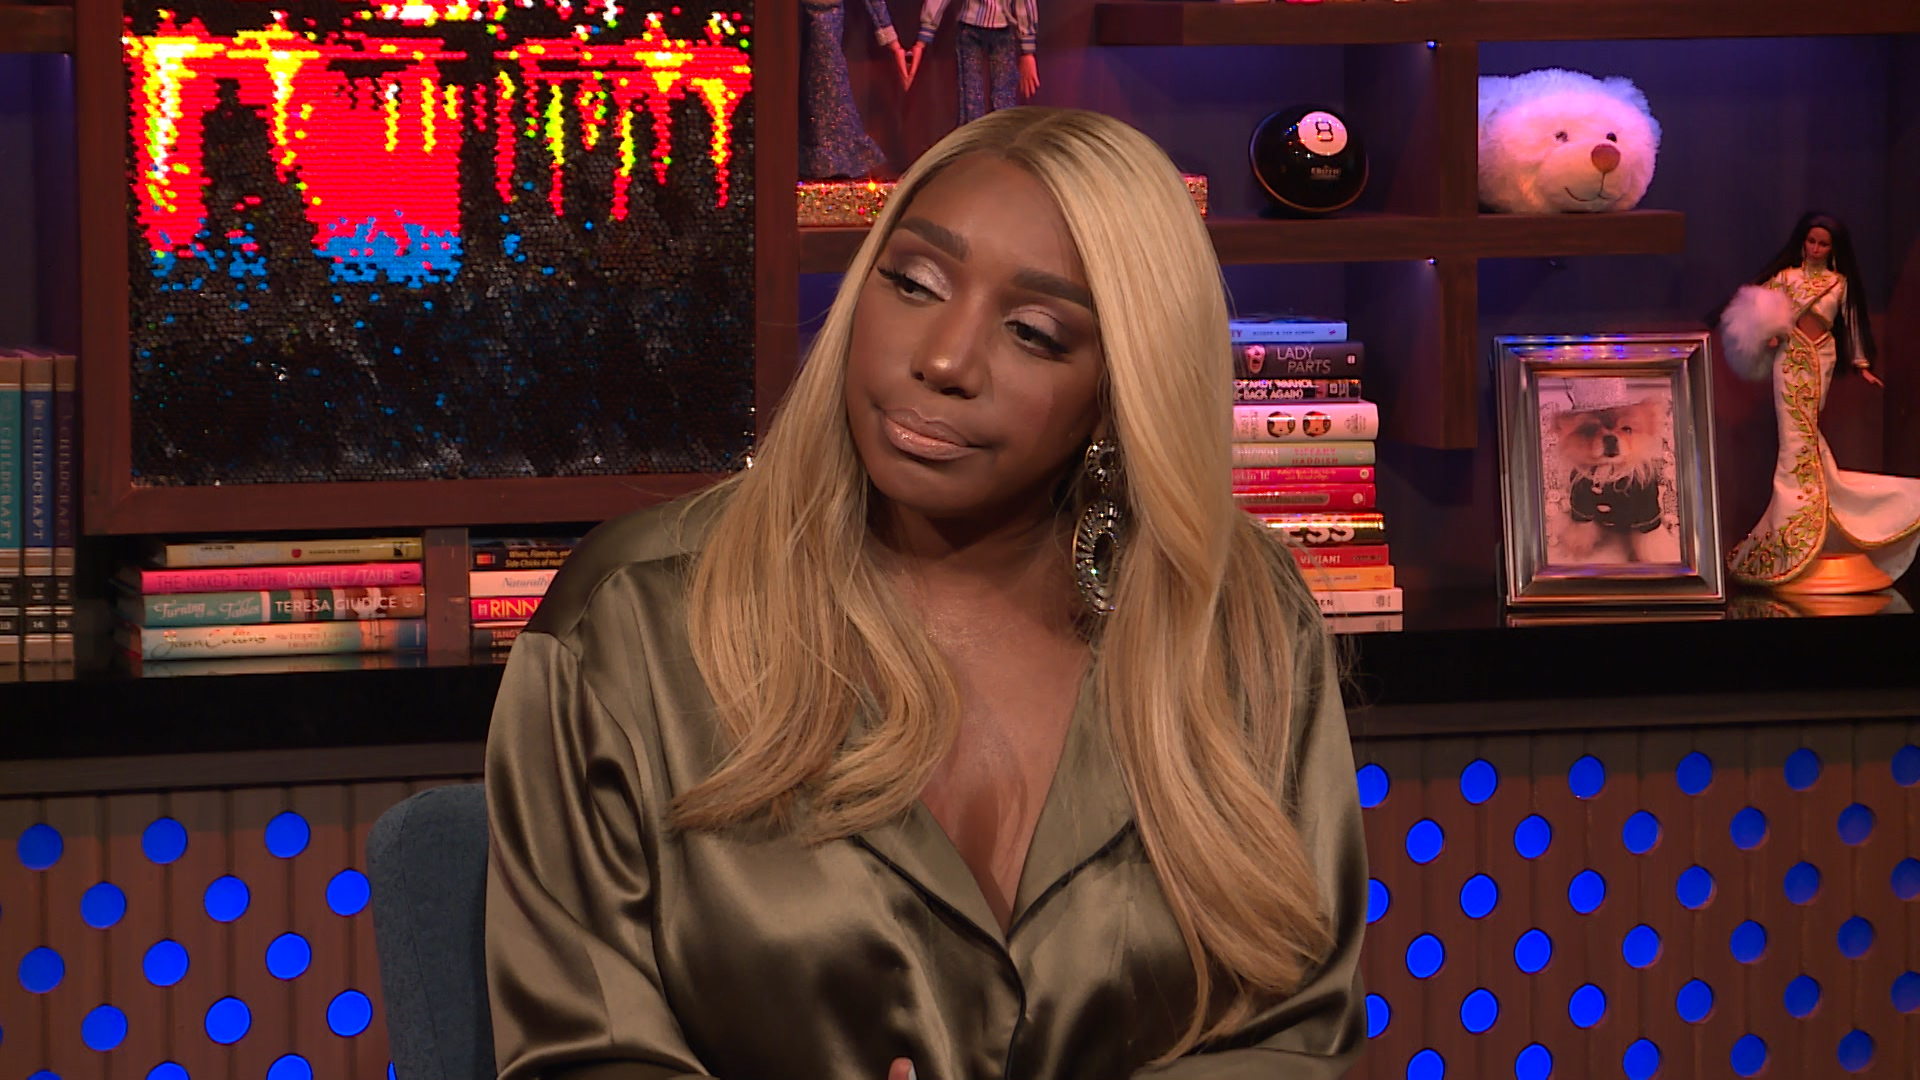 Why Didn't Nene Leakes Cancel Her Party?